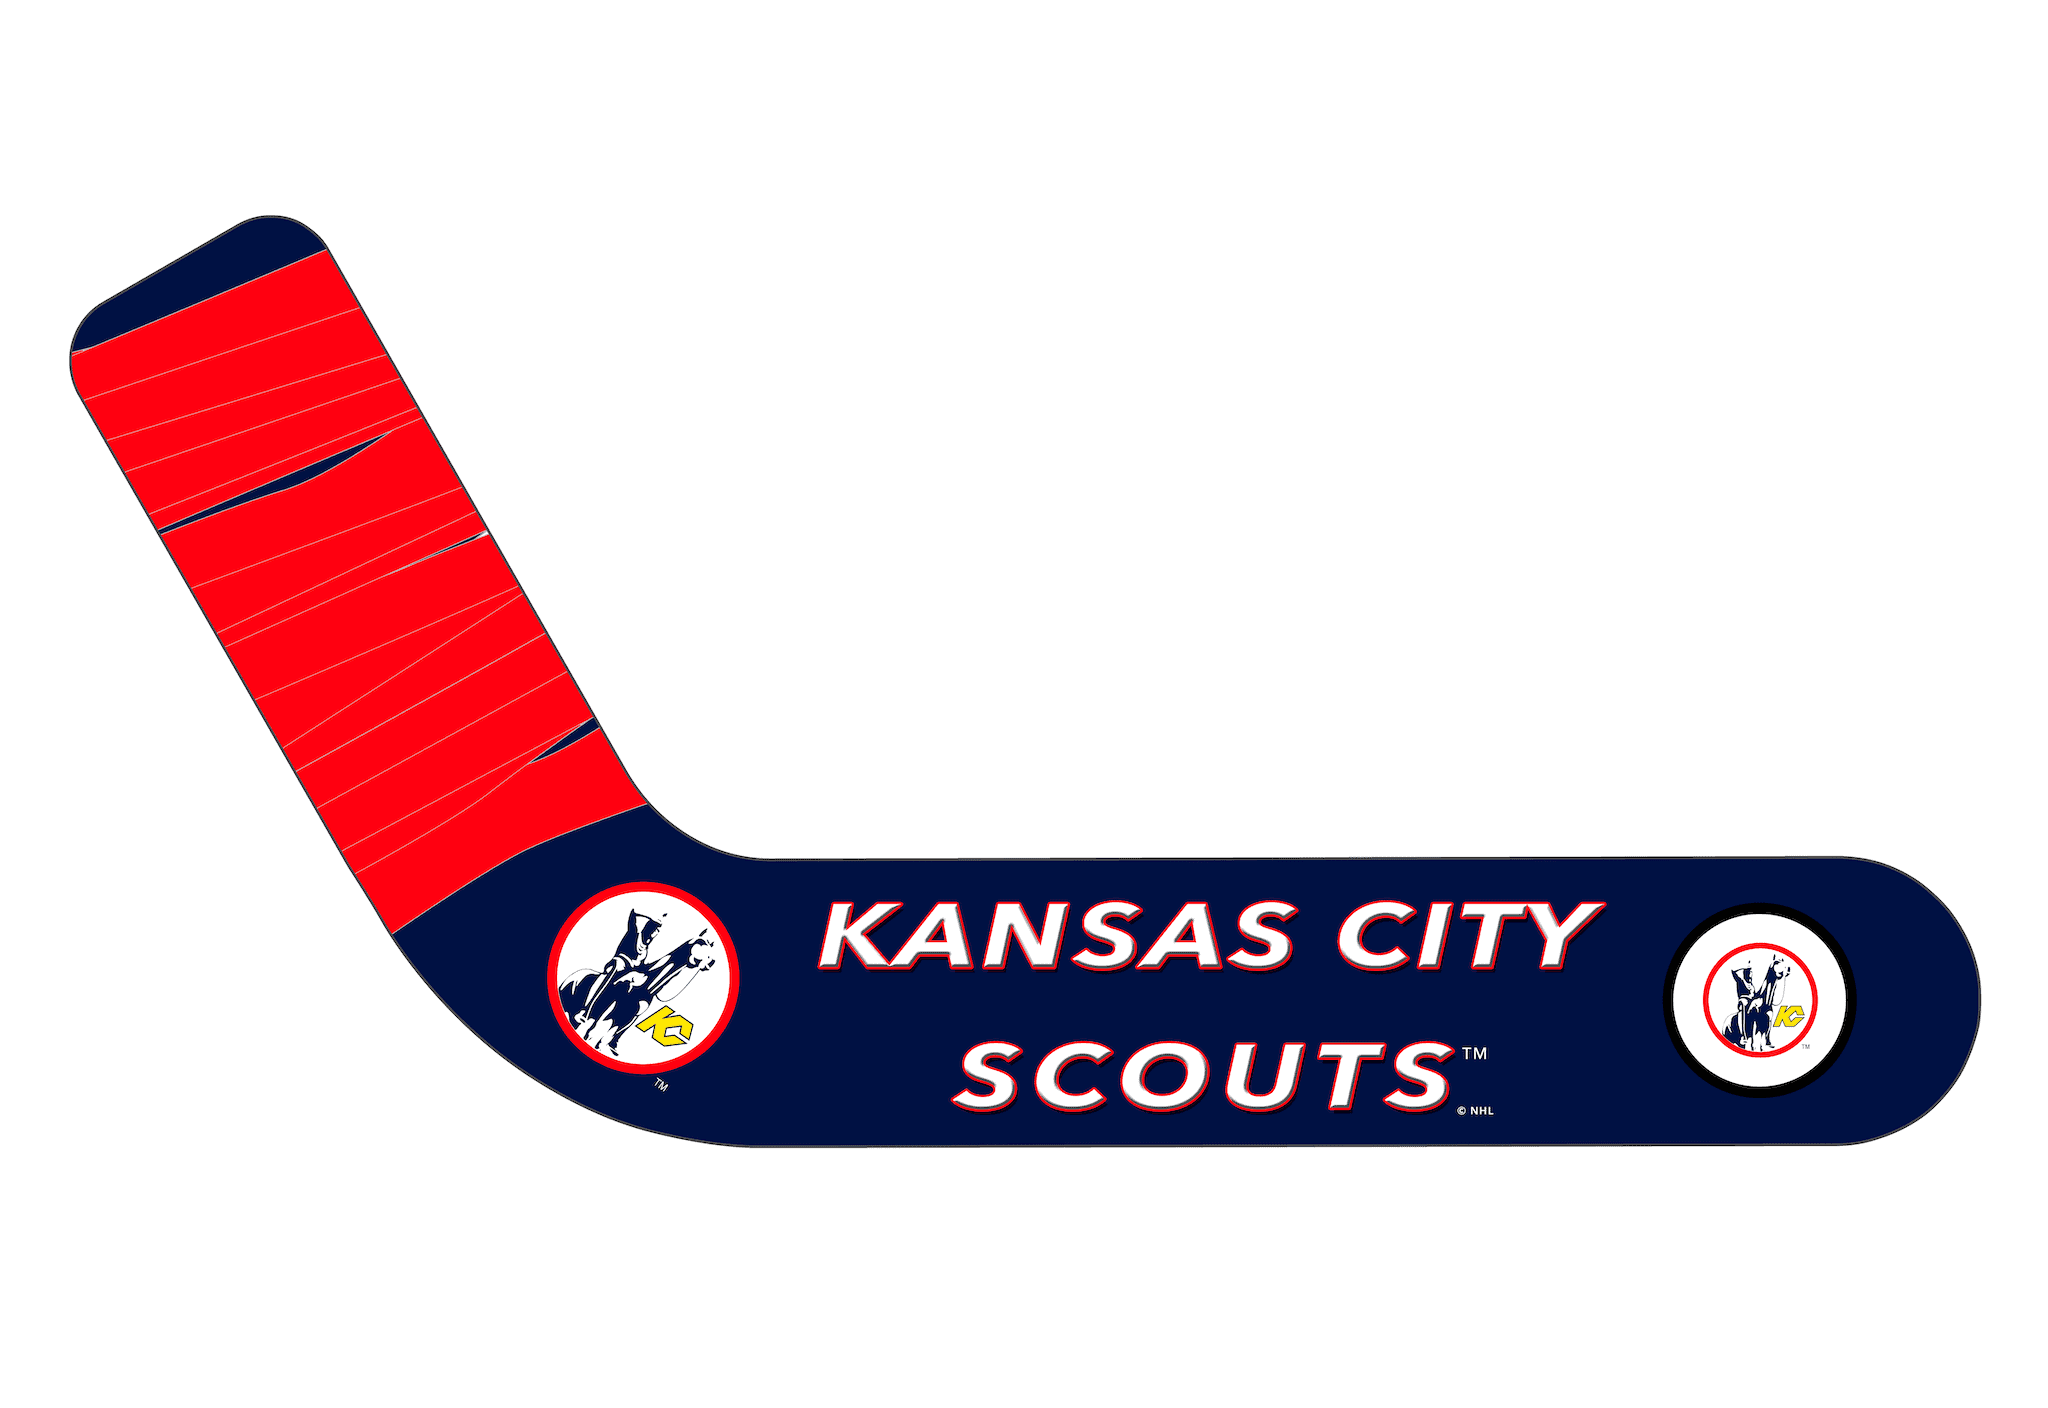 Vintage Kansas City Scouts - Ultimate Hockey Ceiling Fans